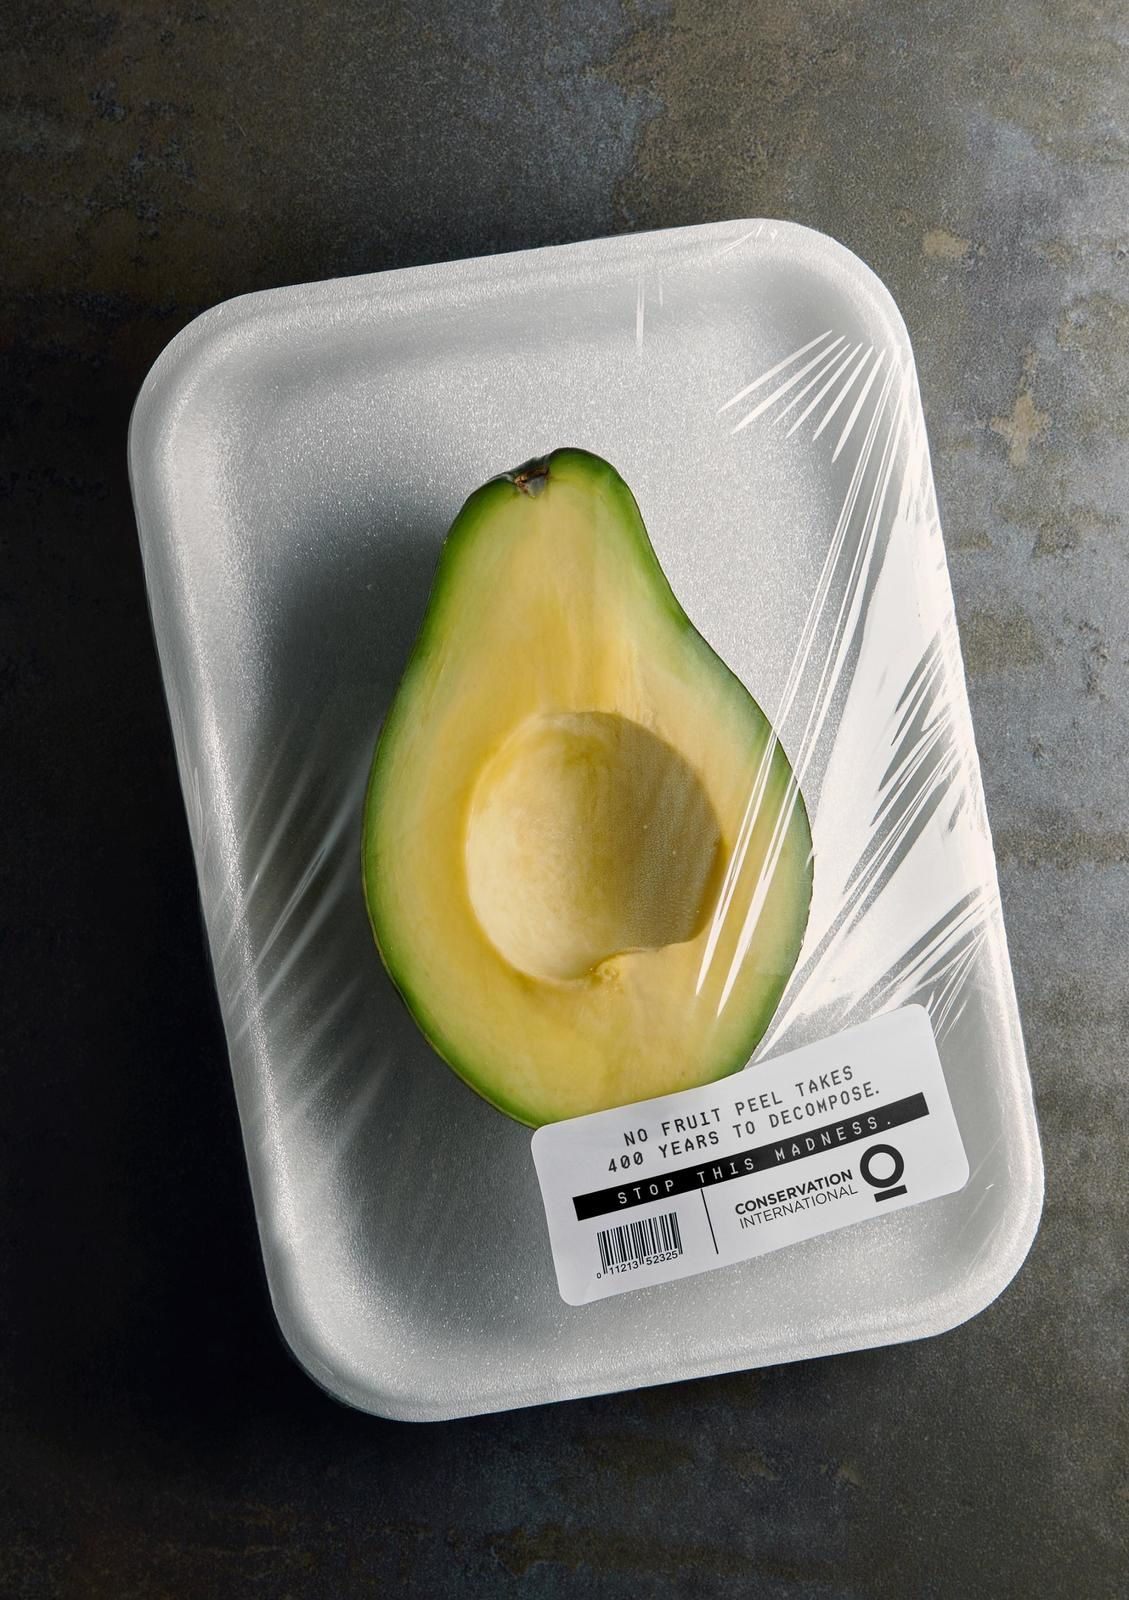 """Conservation International : """"No fruit peel takes 400 years to decompose. Stop this madness"""" I Agence : Mullenlowe SSP3, Bogotá, Colombie (mars 2019)"""